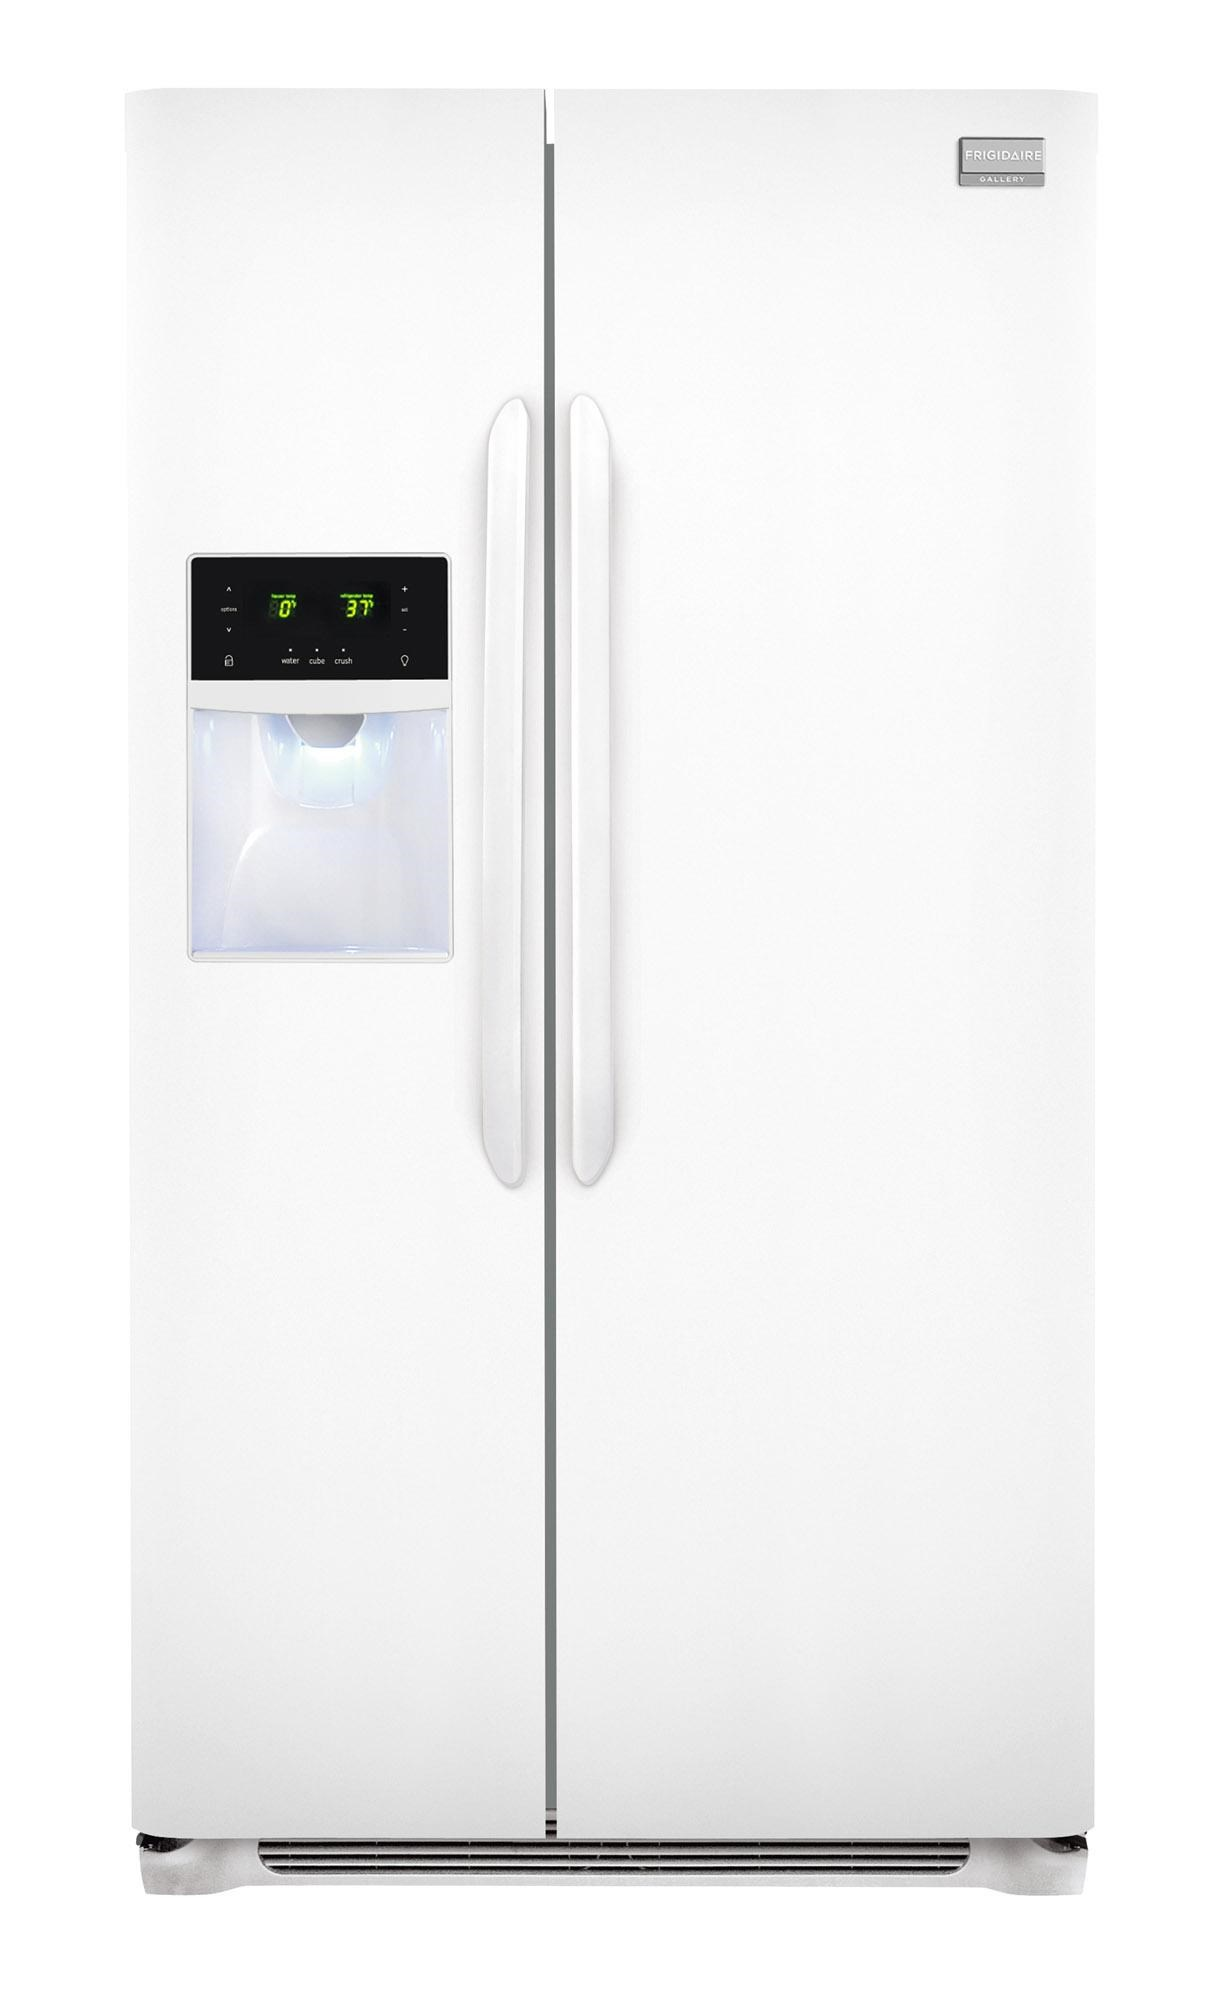 frigidaire fghs2631ppgallery energy star 26 cu ft side by side rh furnitureappliancemart com